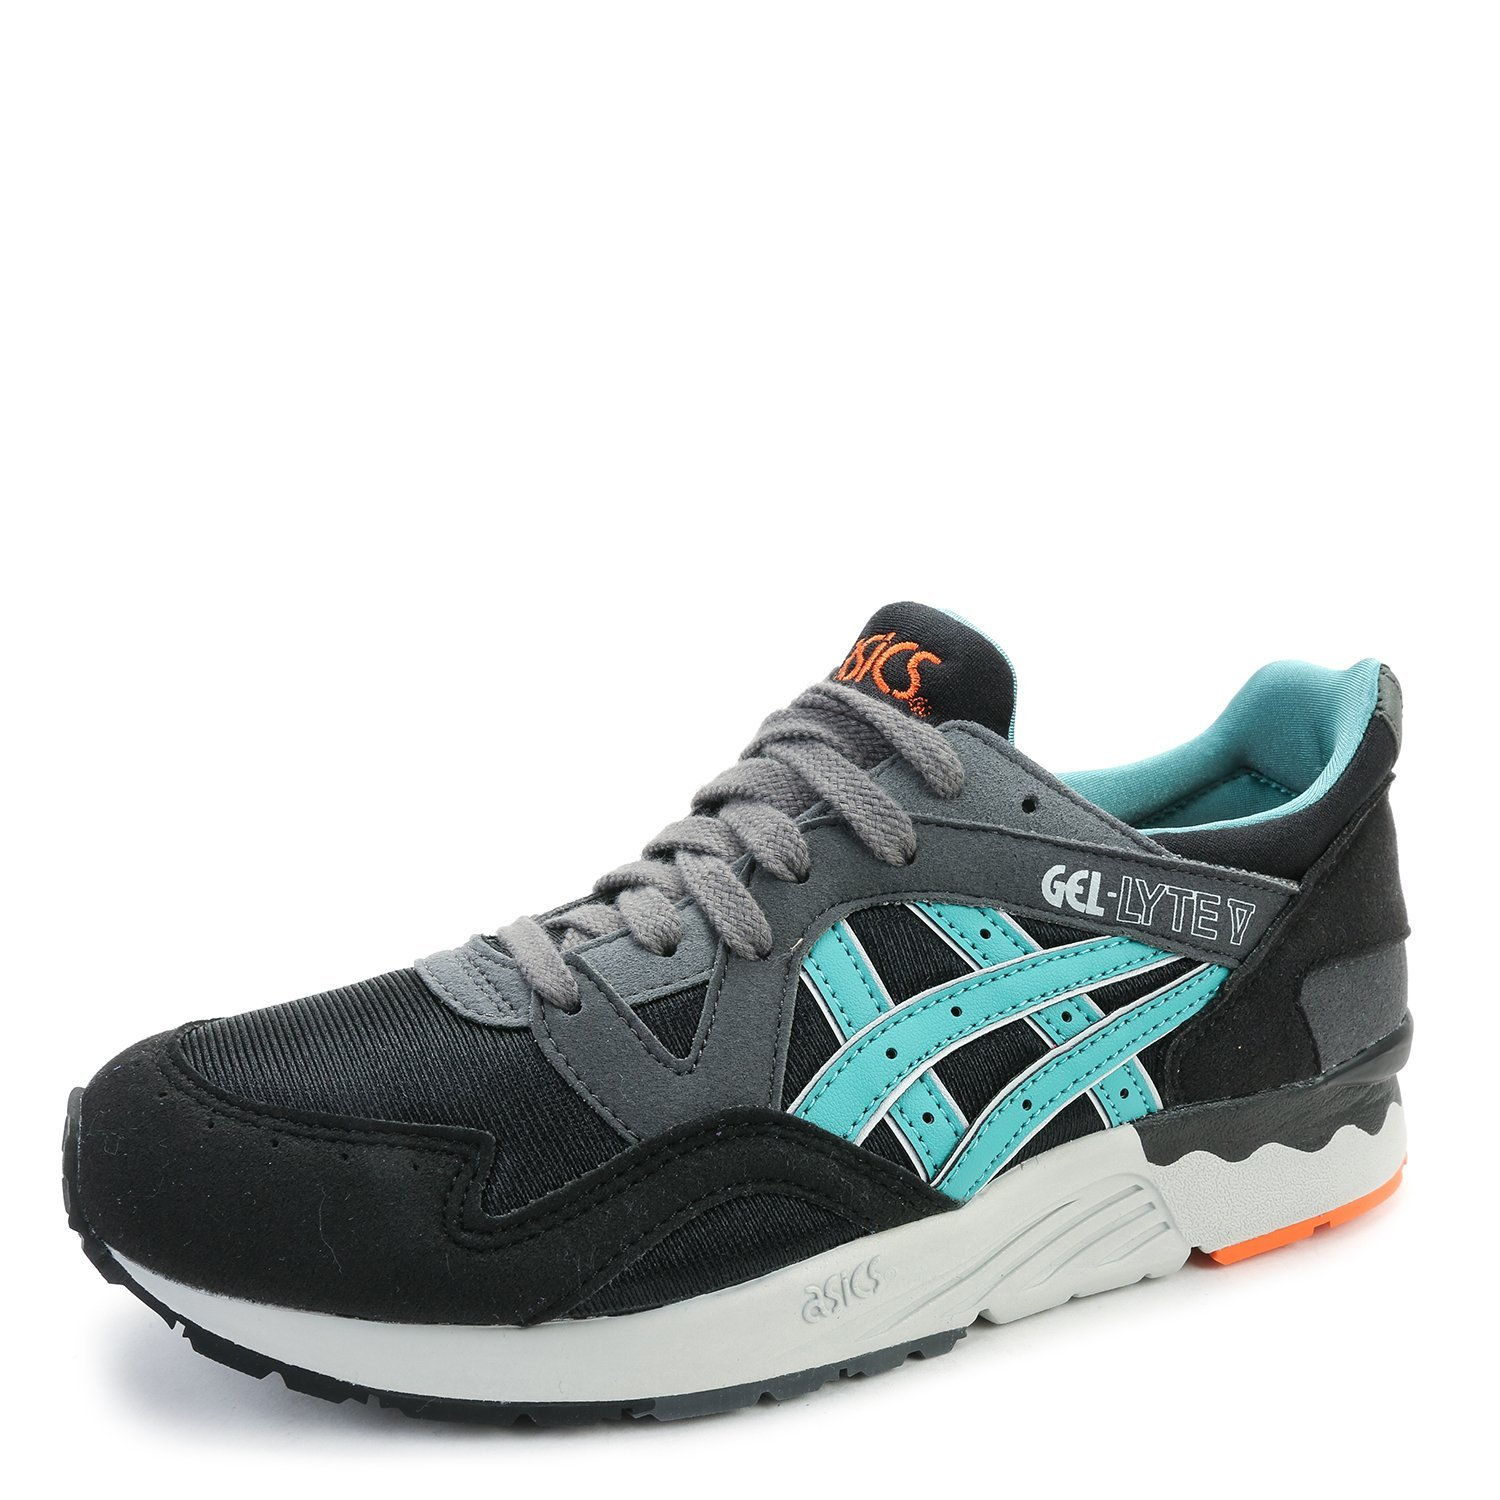 Asics Kid's Gel Lyte V GS Running Sheos C541N.9016 Black/Latigo Bay SZ 5